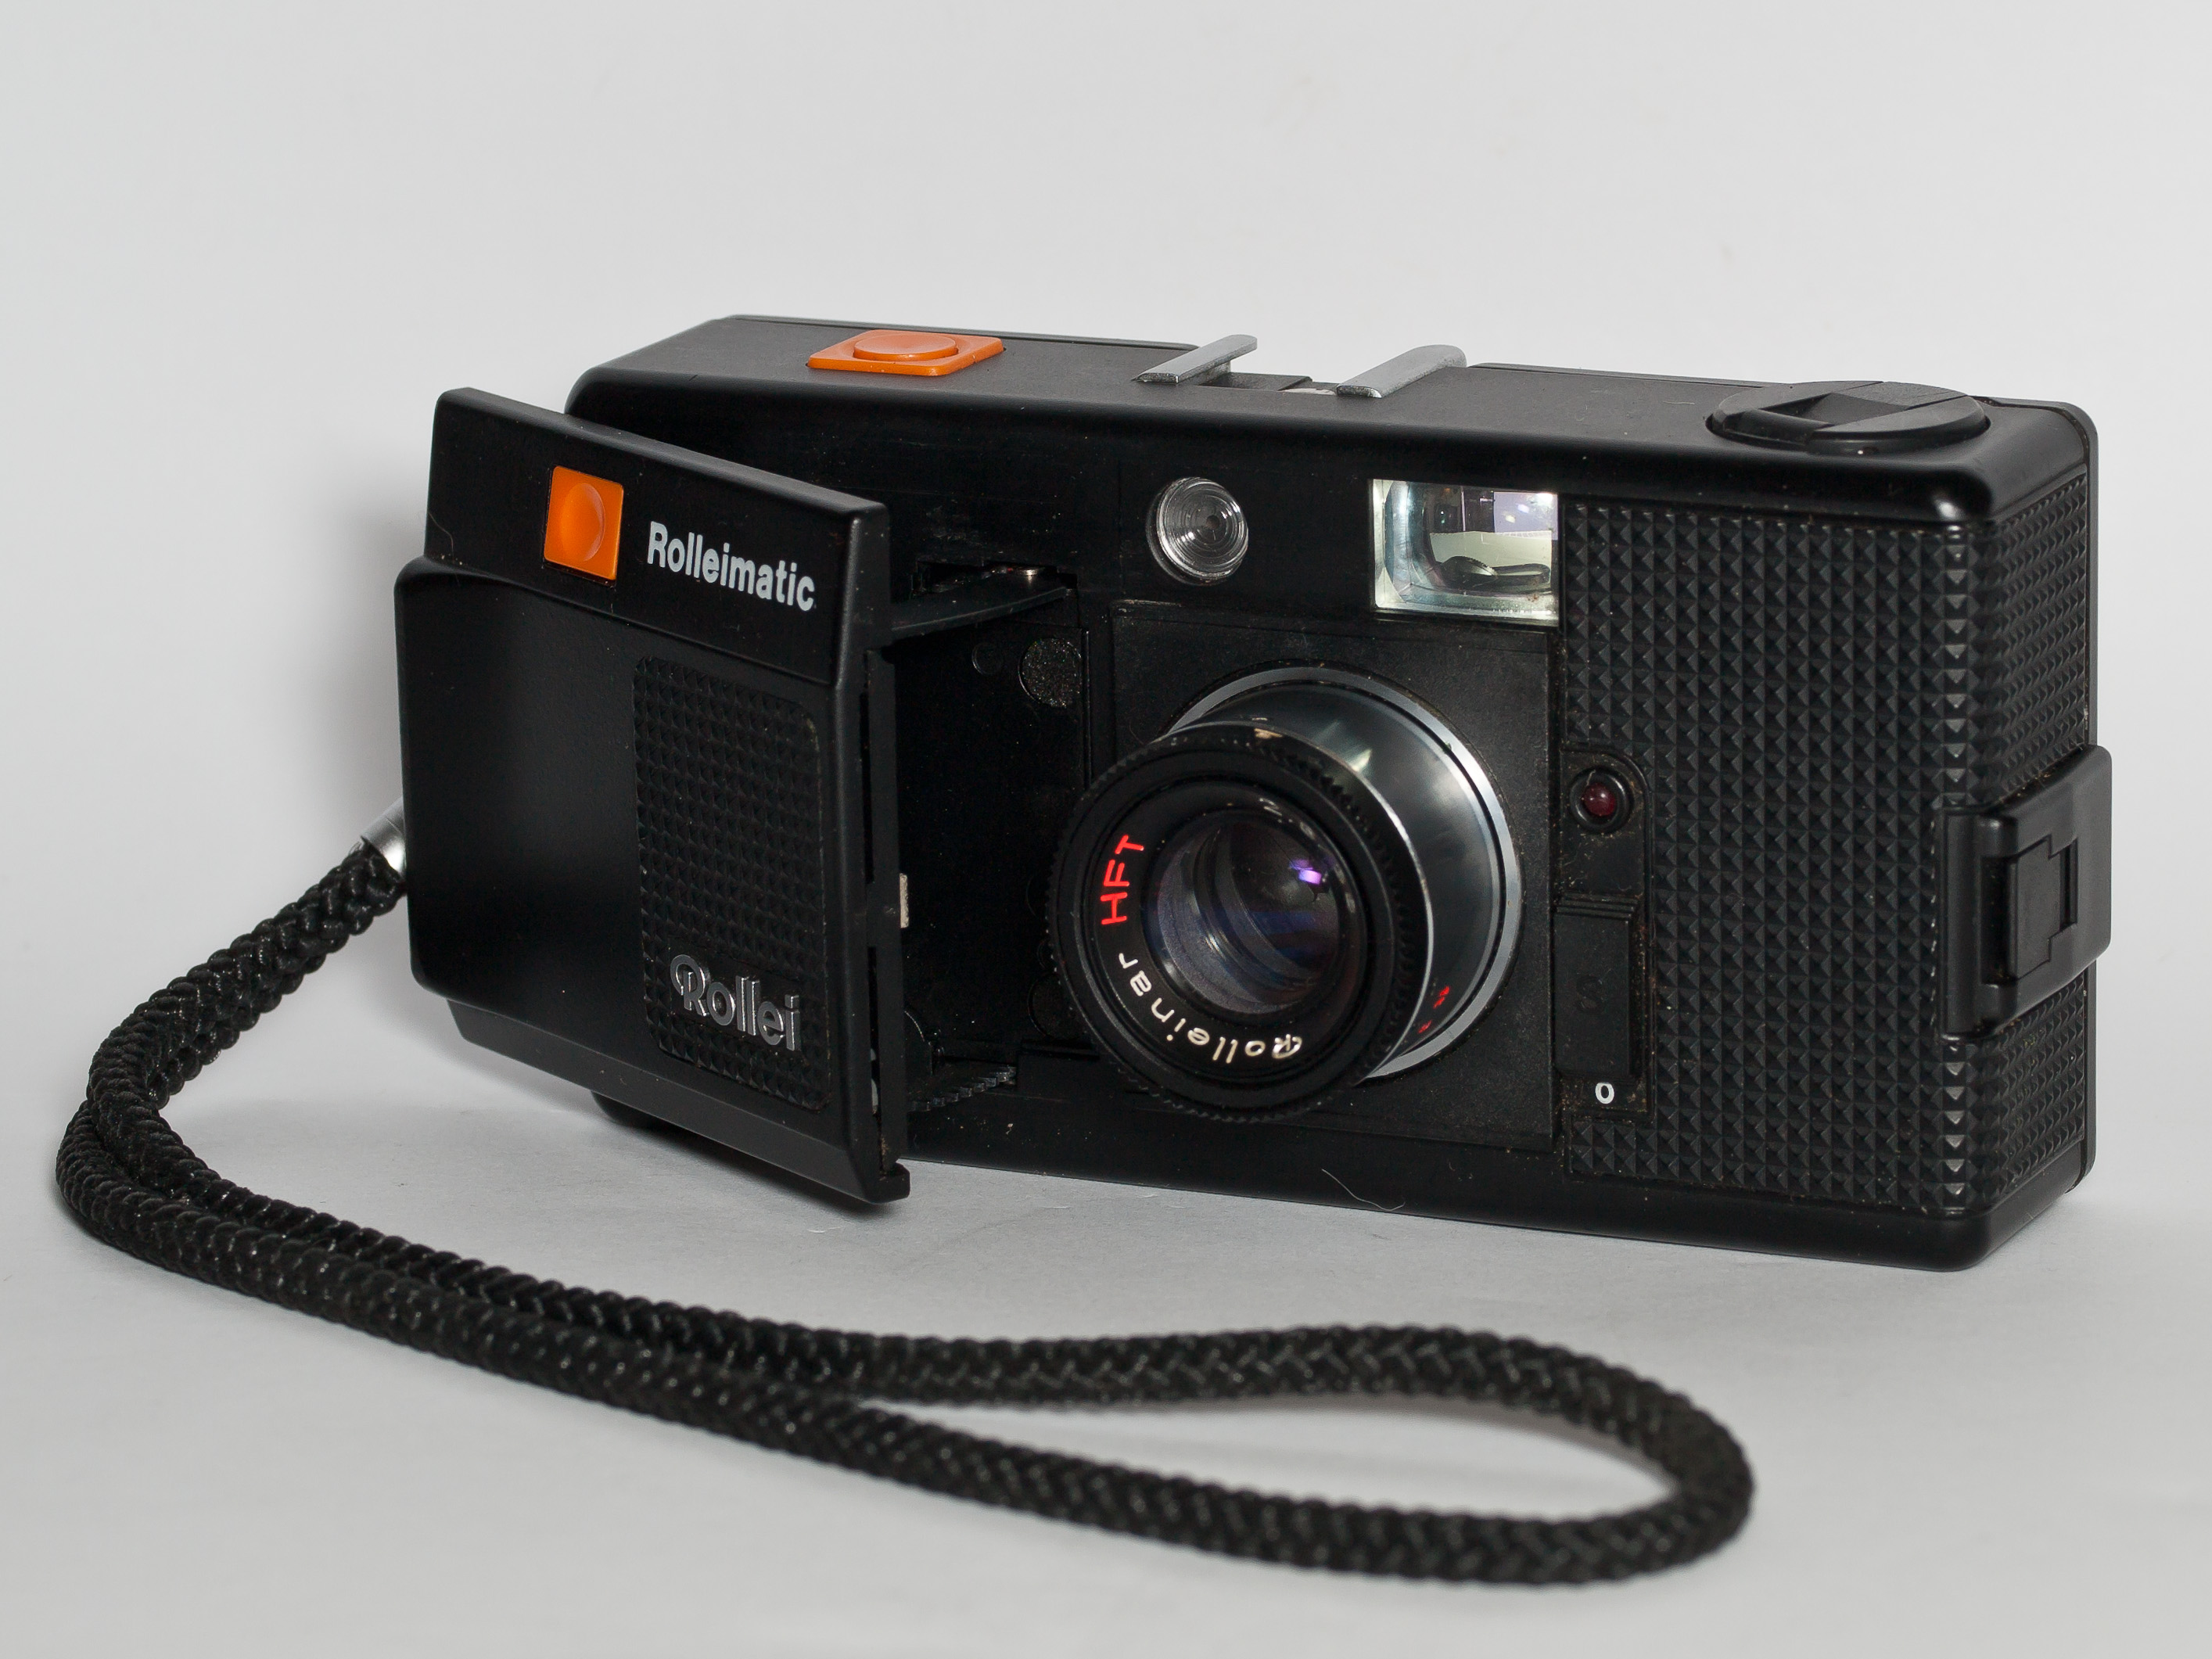 File:Rolleimatic 35mm film camera 2.jpg - Wikimedia Commons